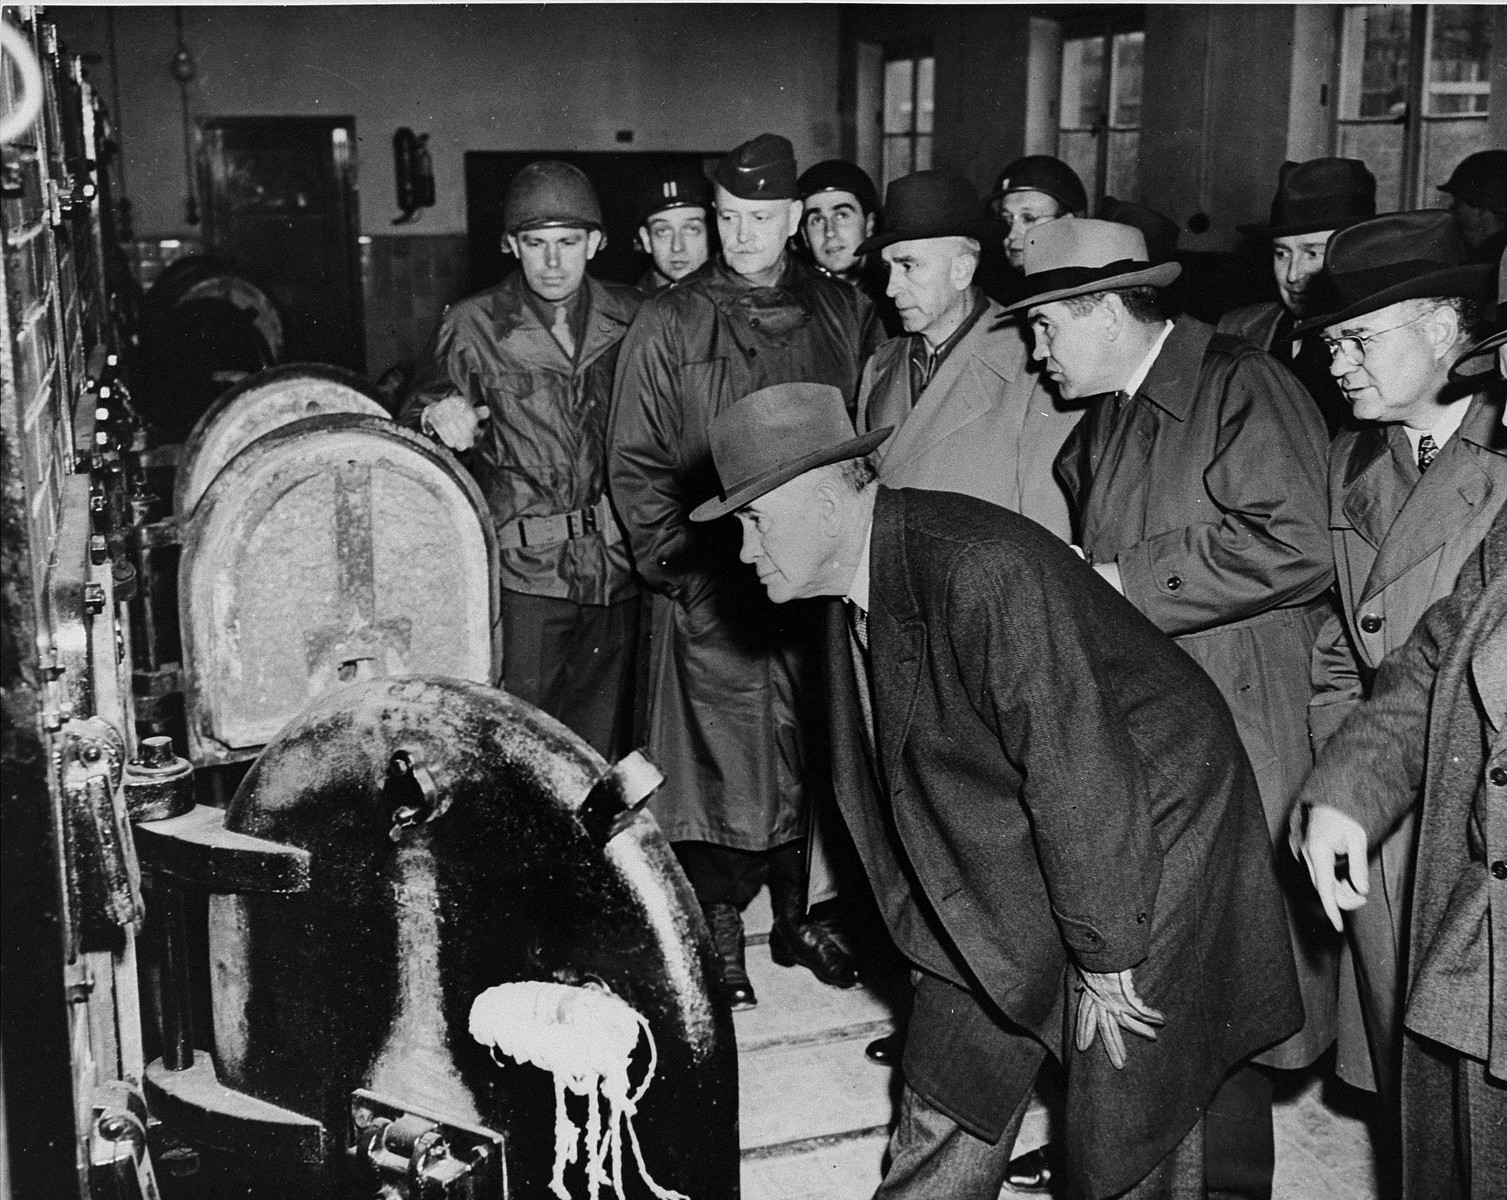 American congressmen view the open ovens in the Buchenwald crematorium during an inspection of the newly liberated concentration camp.  Pictured from left to right are: Senator Alben W. Barkely (D.Ky), Representative Edward V. Isac (D.CA.), Representative John M. Vorys (R. OH.), Representative Dewey Short (R. MO.), Senator C. Wayland Brooks, (R. IL.), and Senator Kenneth S. Wherry (R. NB).